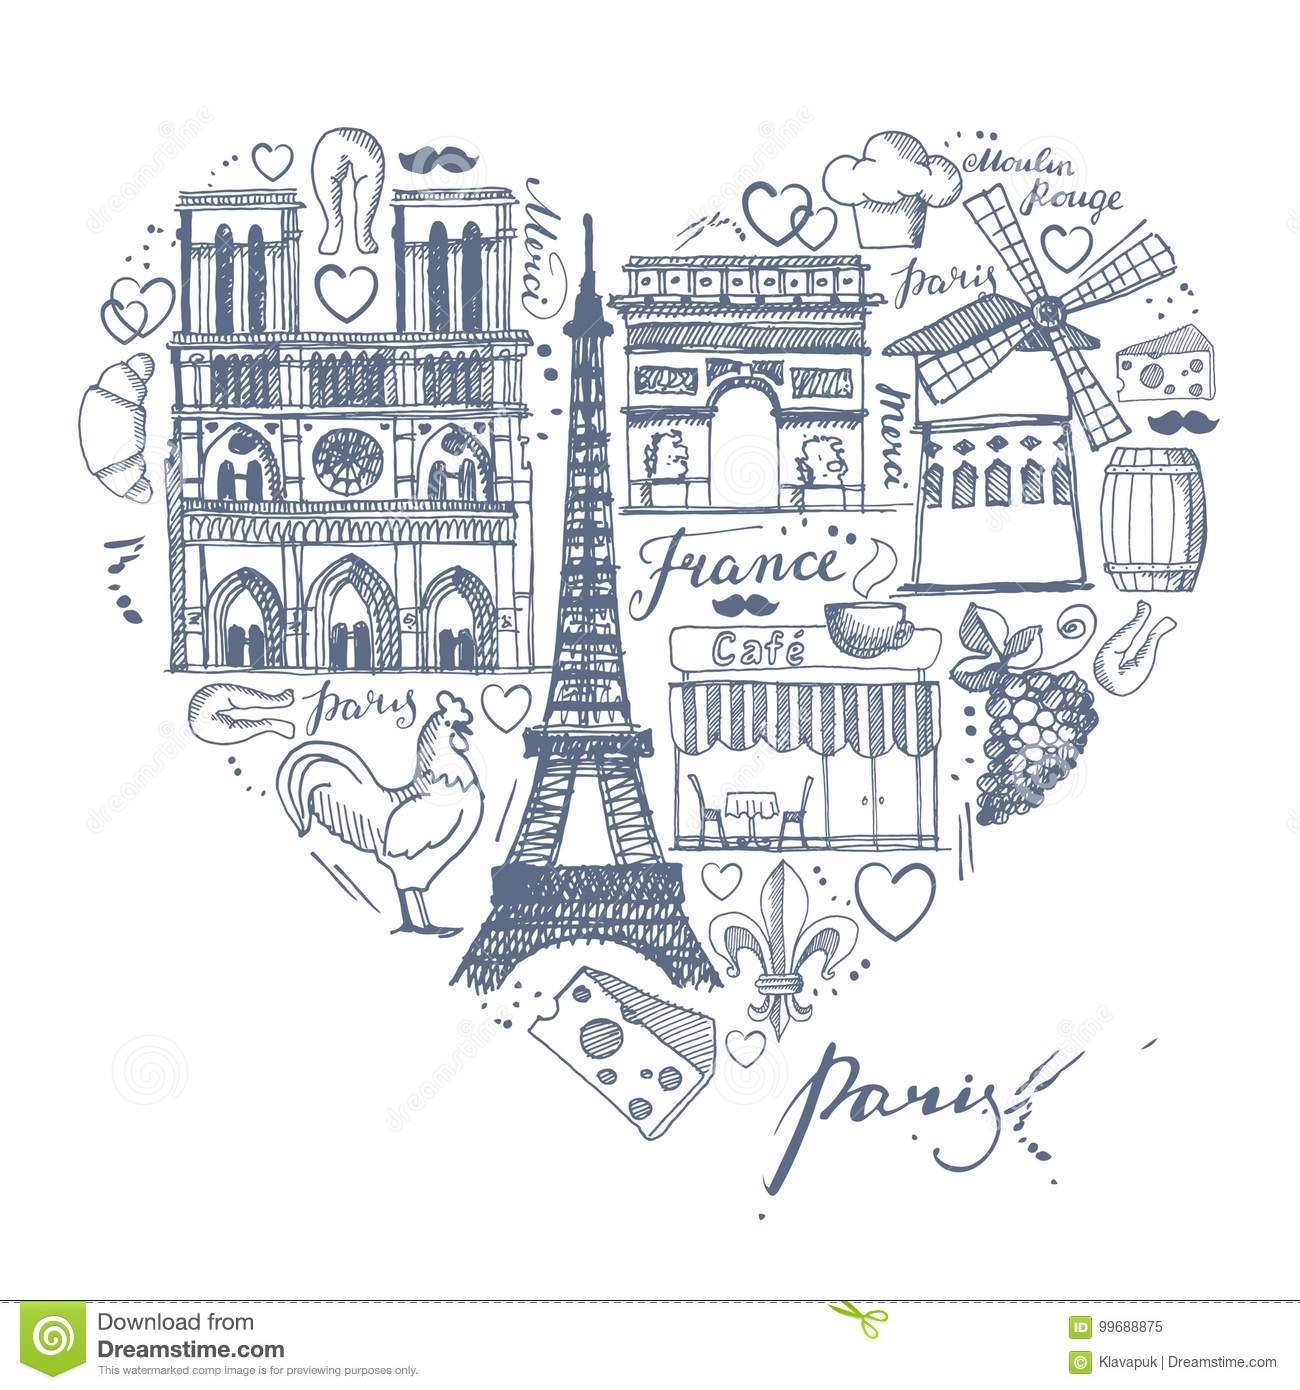 The Sketches About France And Paris In Shape Of A Heart